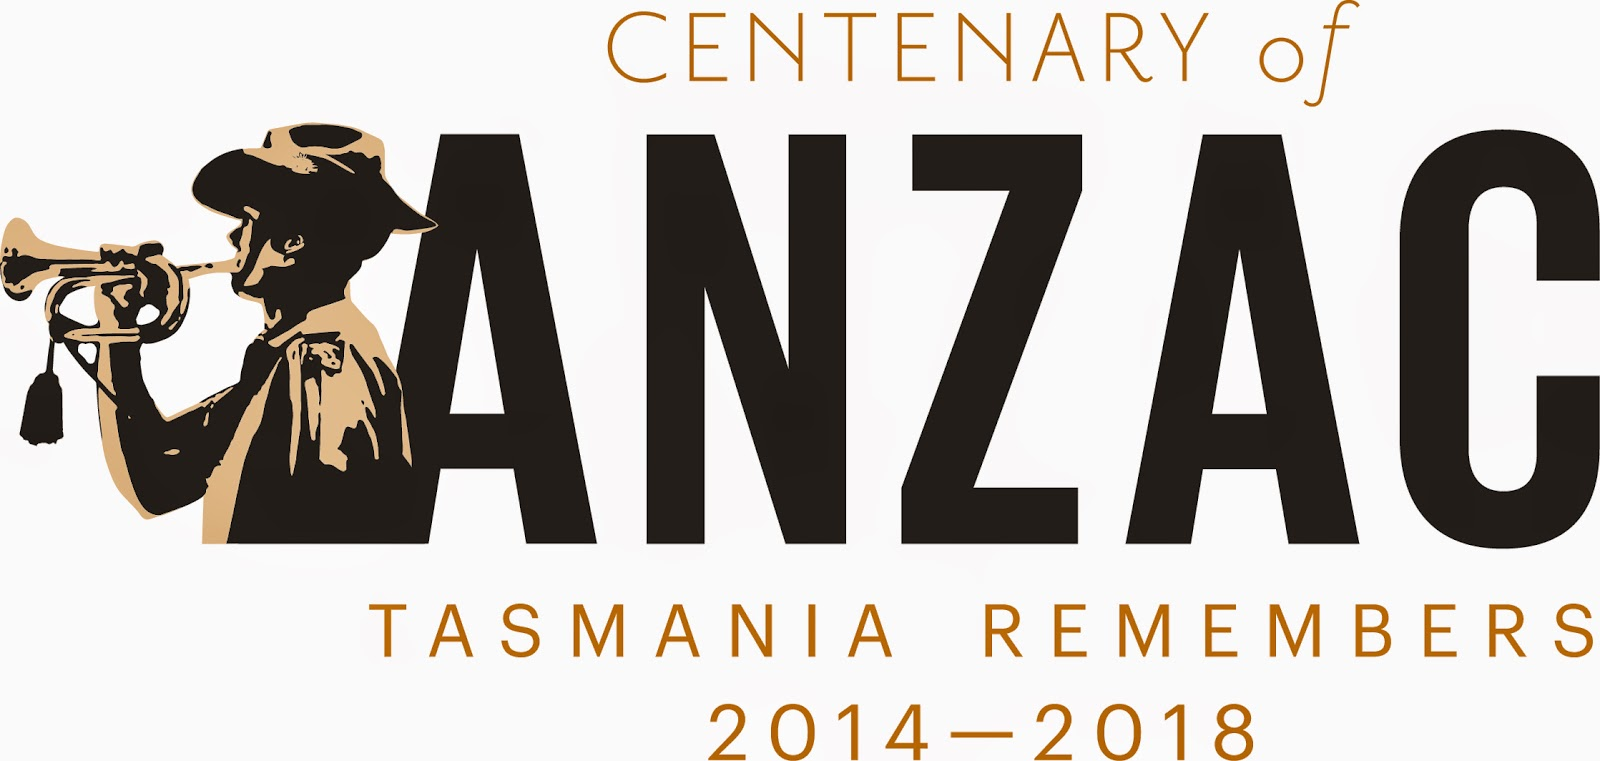 "Text ""Centenary of ANZAC Tasmania Remembers 2014-2018"" with image of soldier playing bugle"